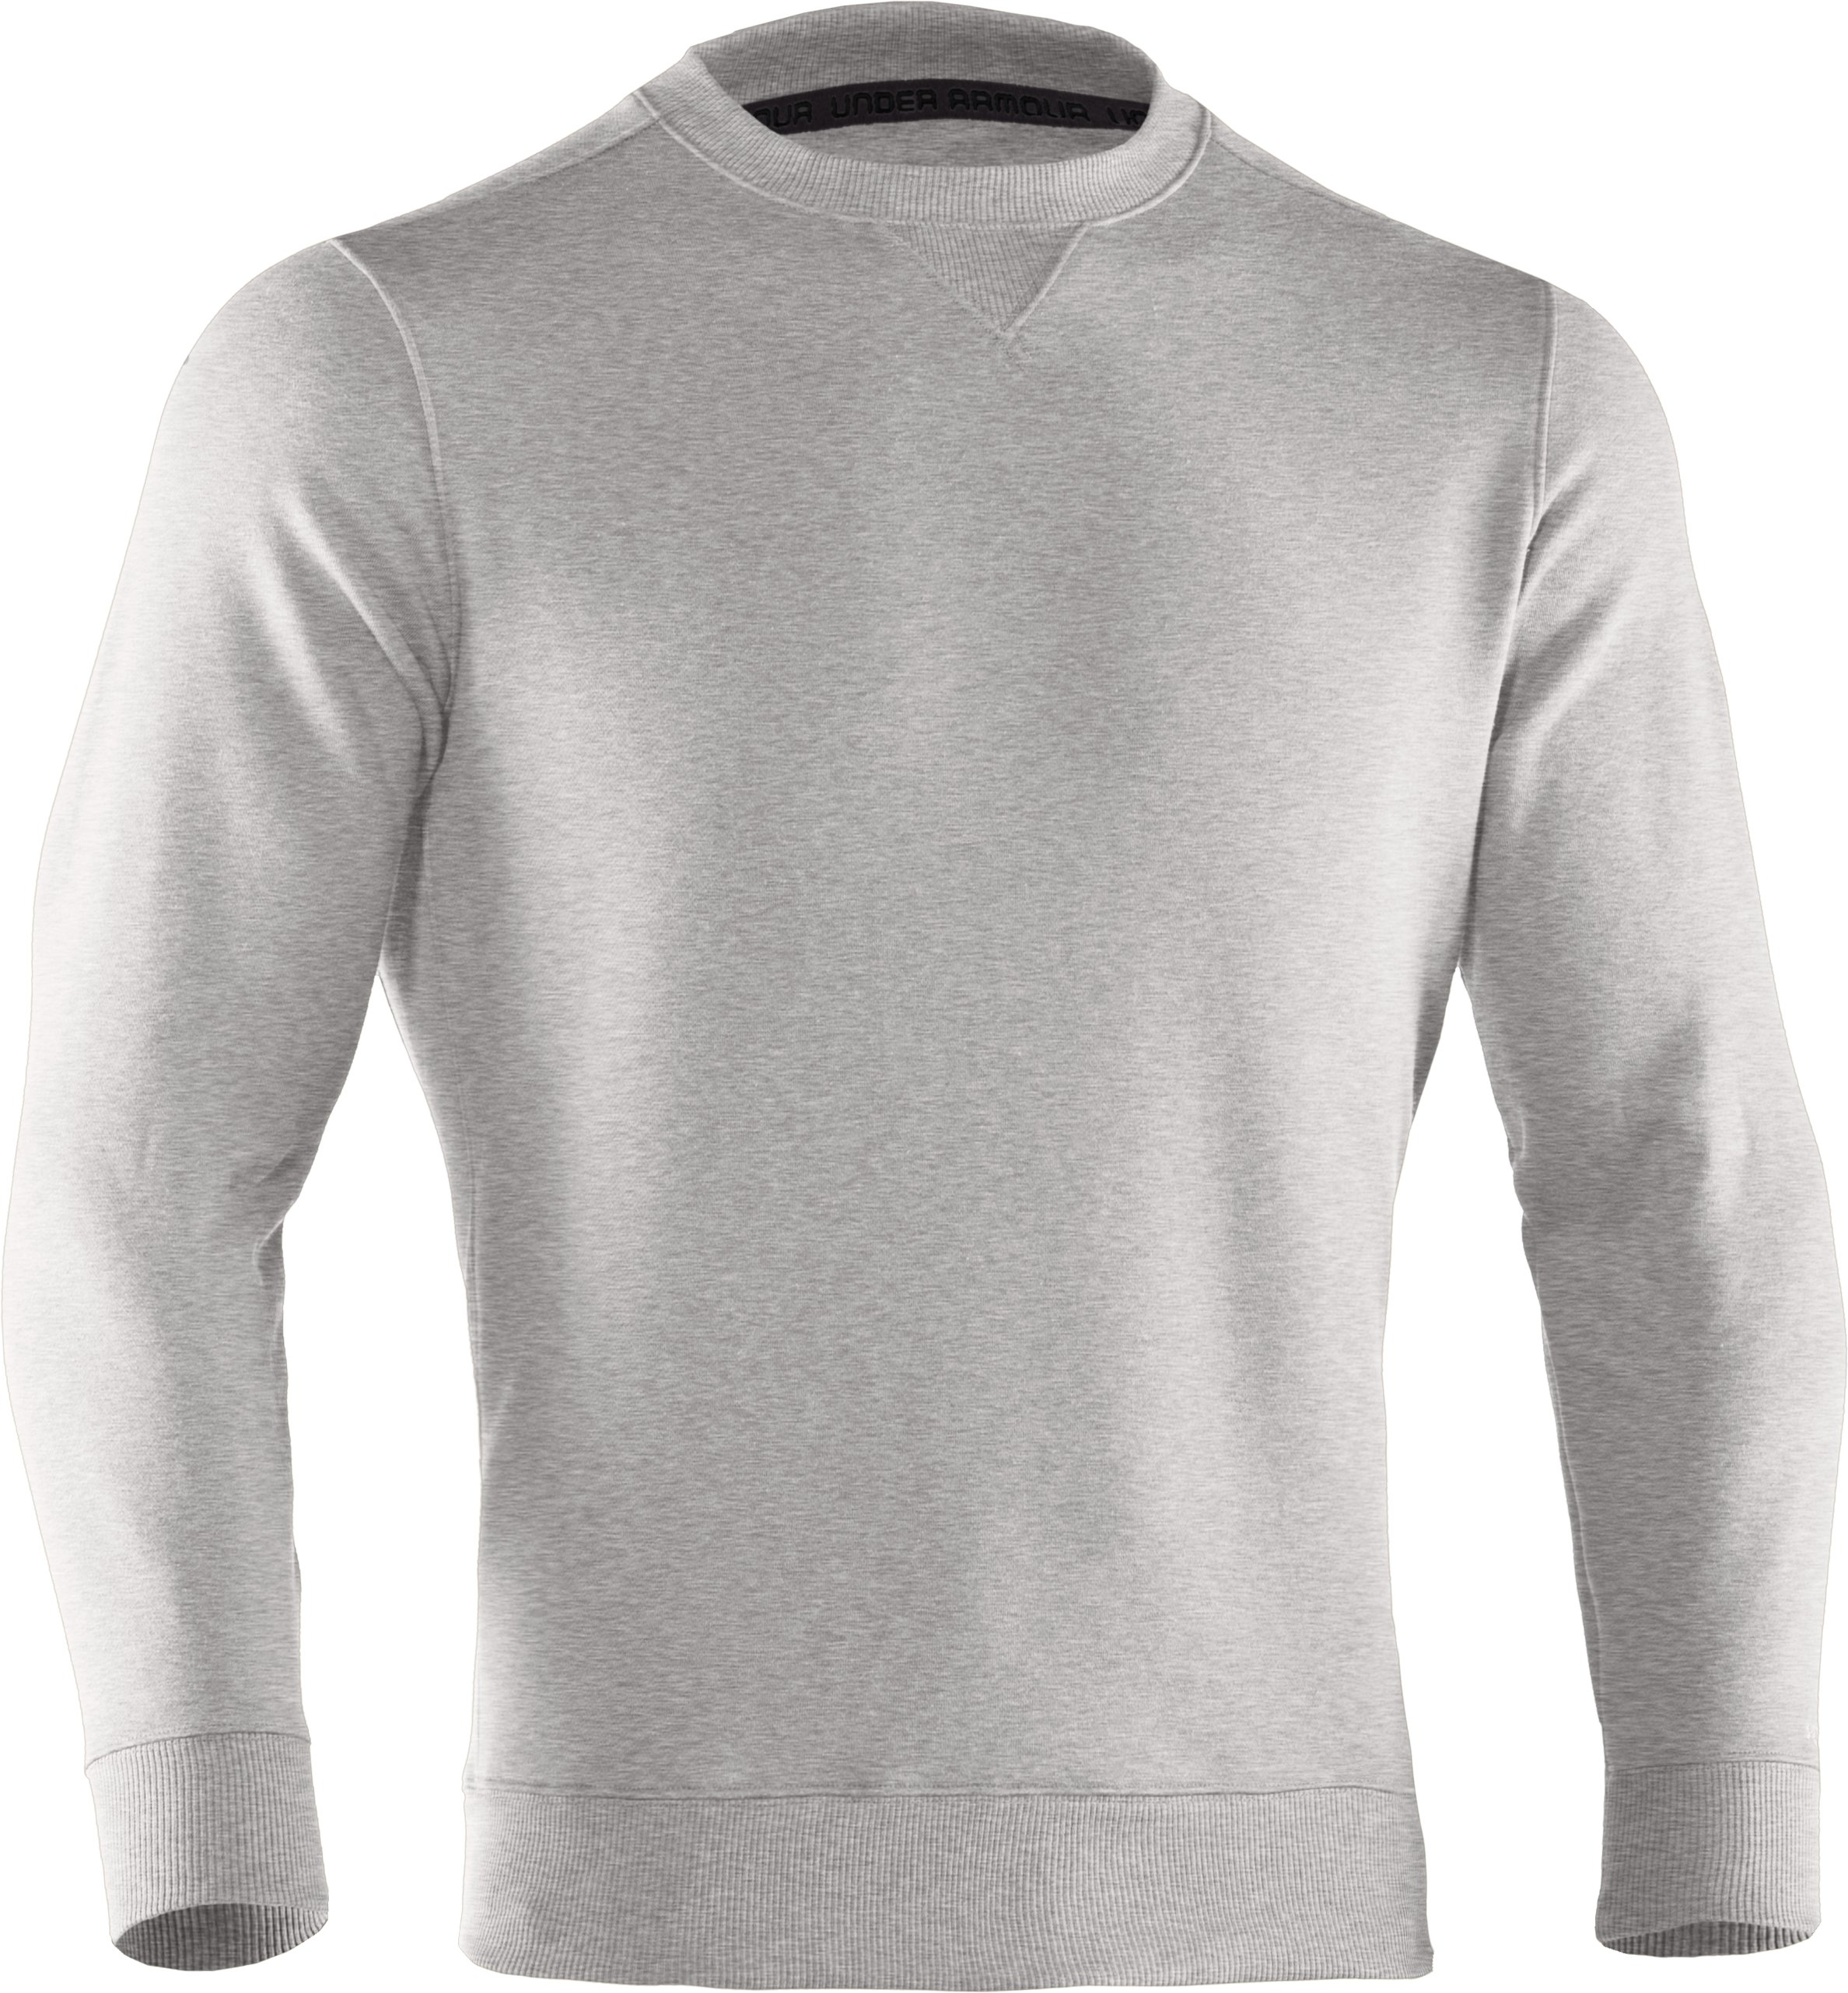 Men's Charged Cotton® Storm Crew, Silver Heather